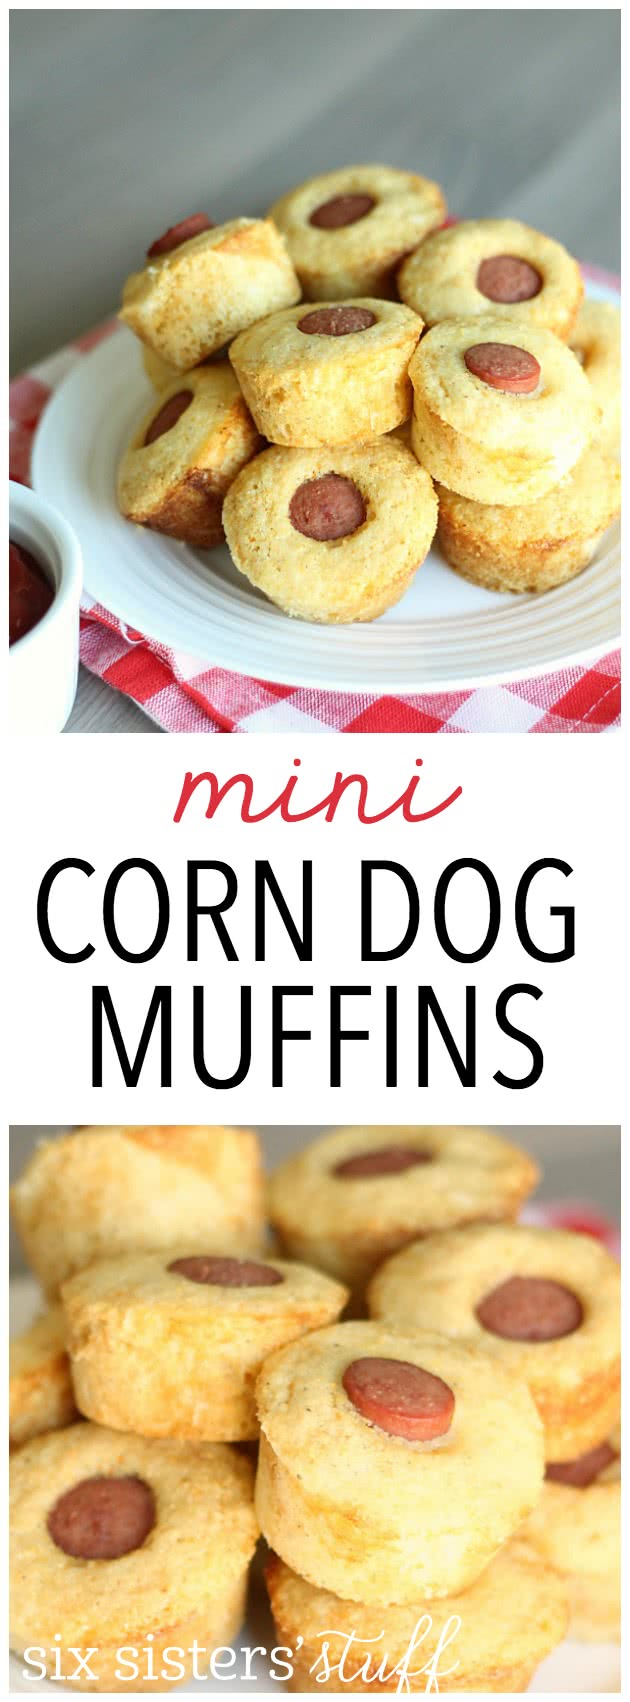 Mini Corn Dog Muffins Recipe from SixSistersStuff.com.  My kids LOVE these!